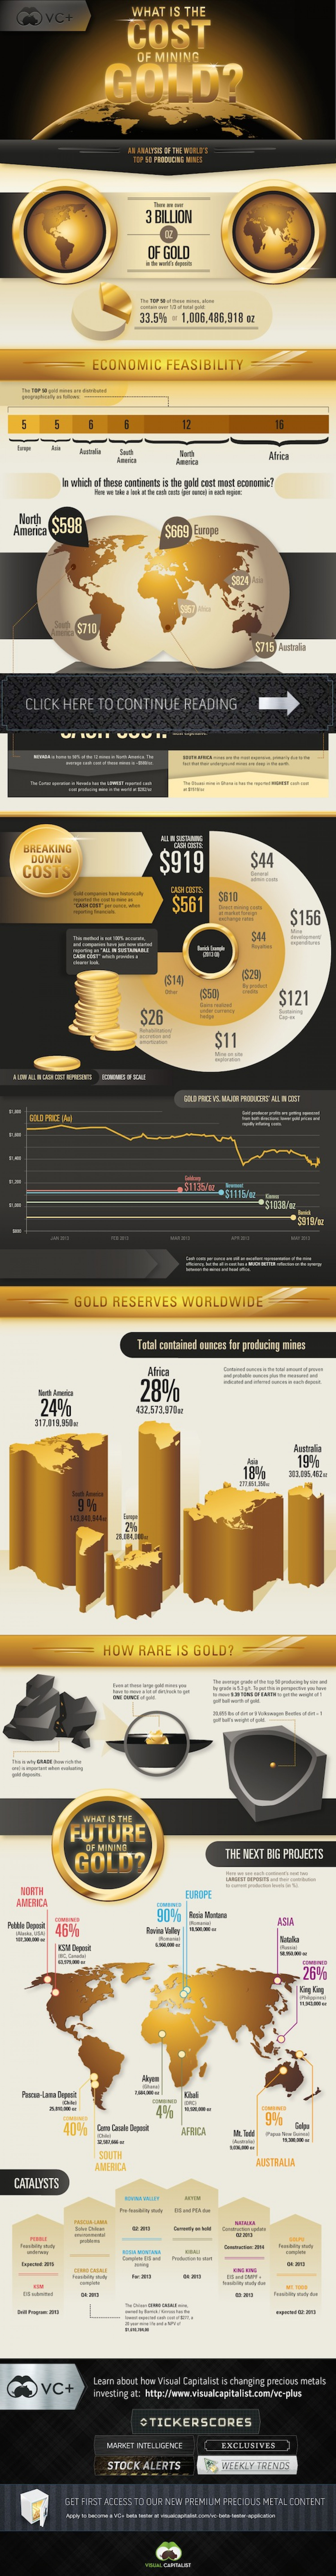 VC+ Exclusive   What is the Cost of Mining Gold? Infographic